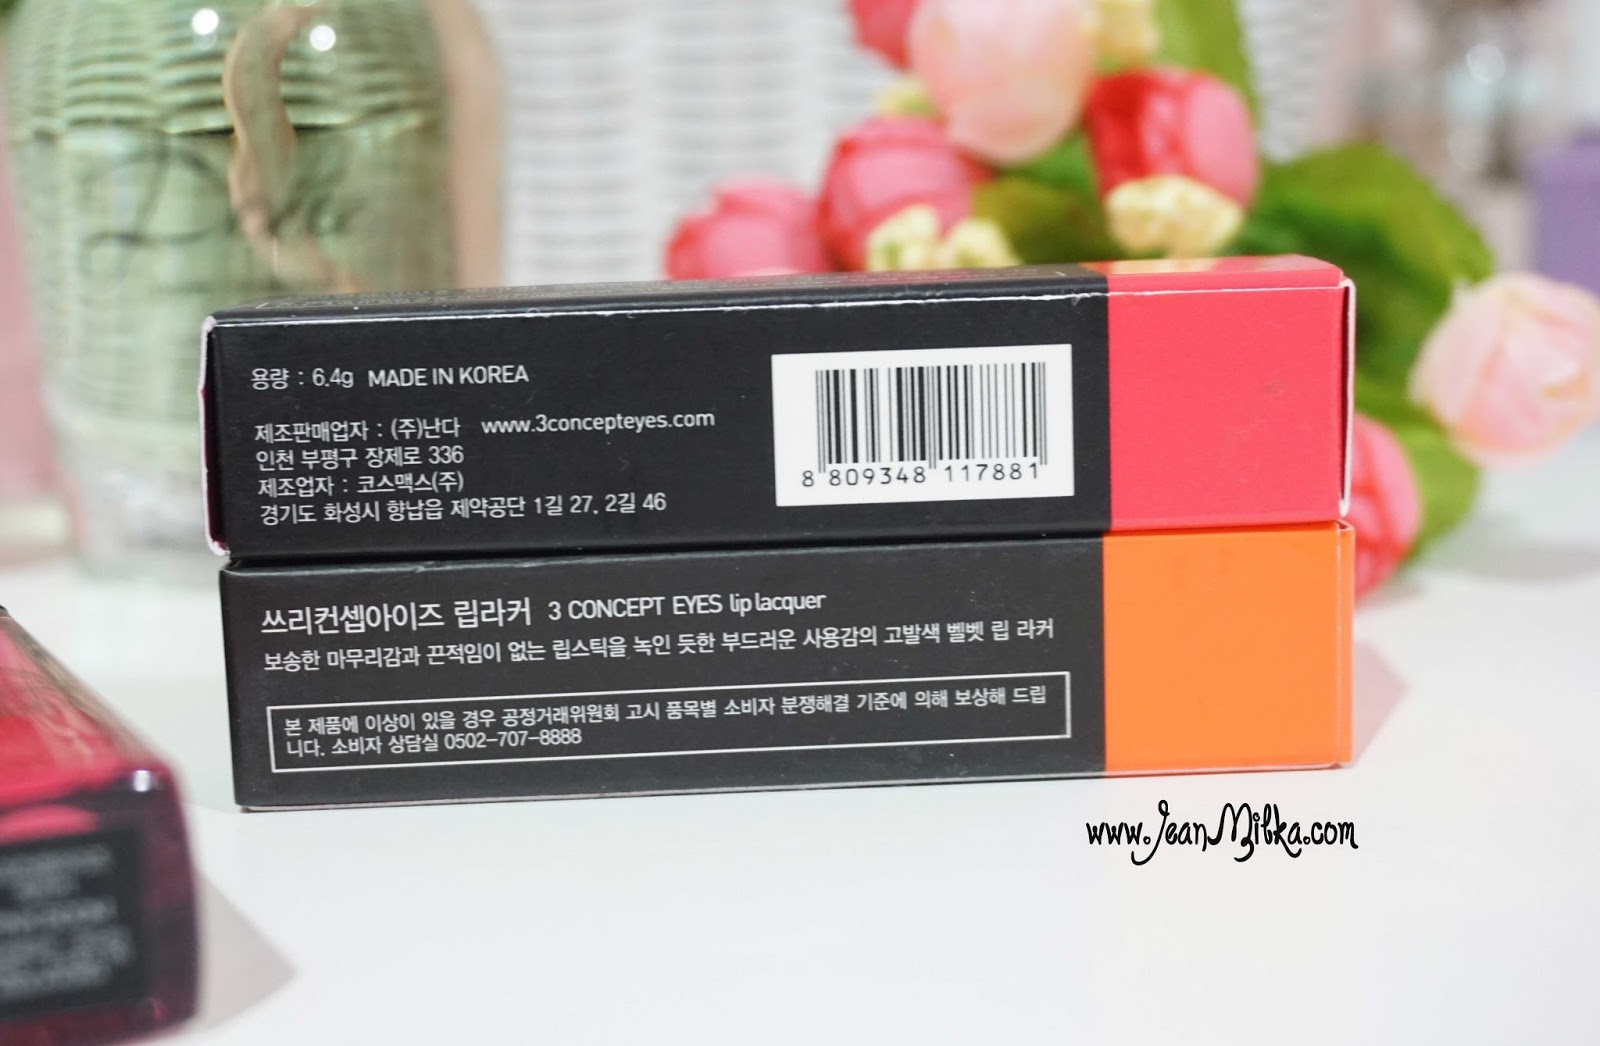 3ce lip lacquer packaging